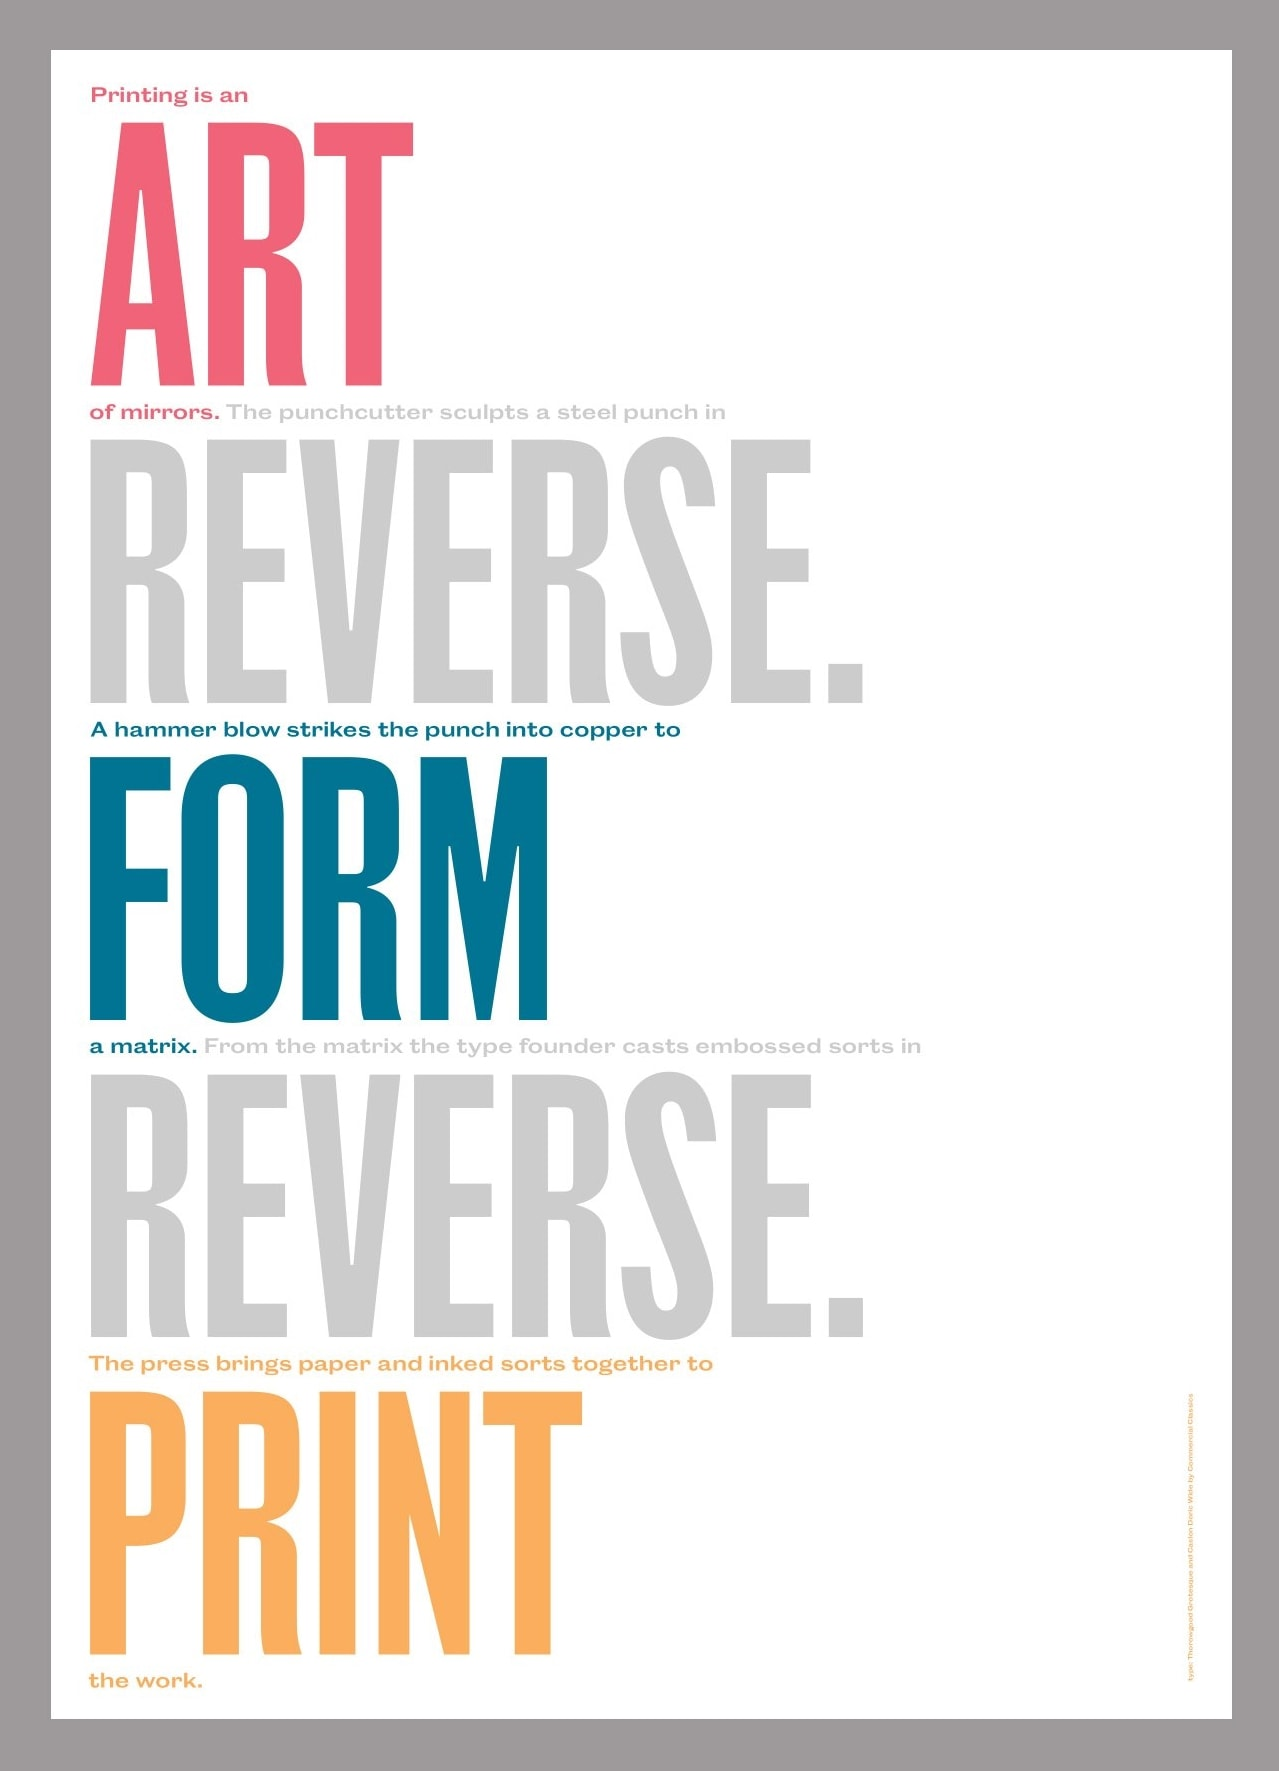 Typographic poster by Tom Etherington and Keith Houston featuring show-through text printed in reverse